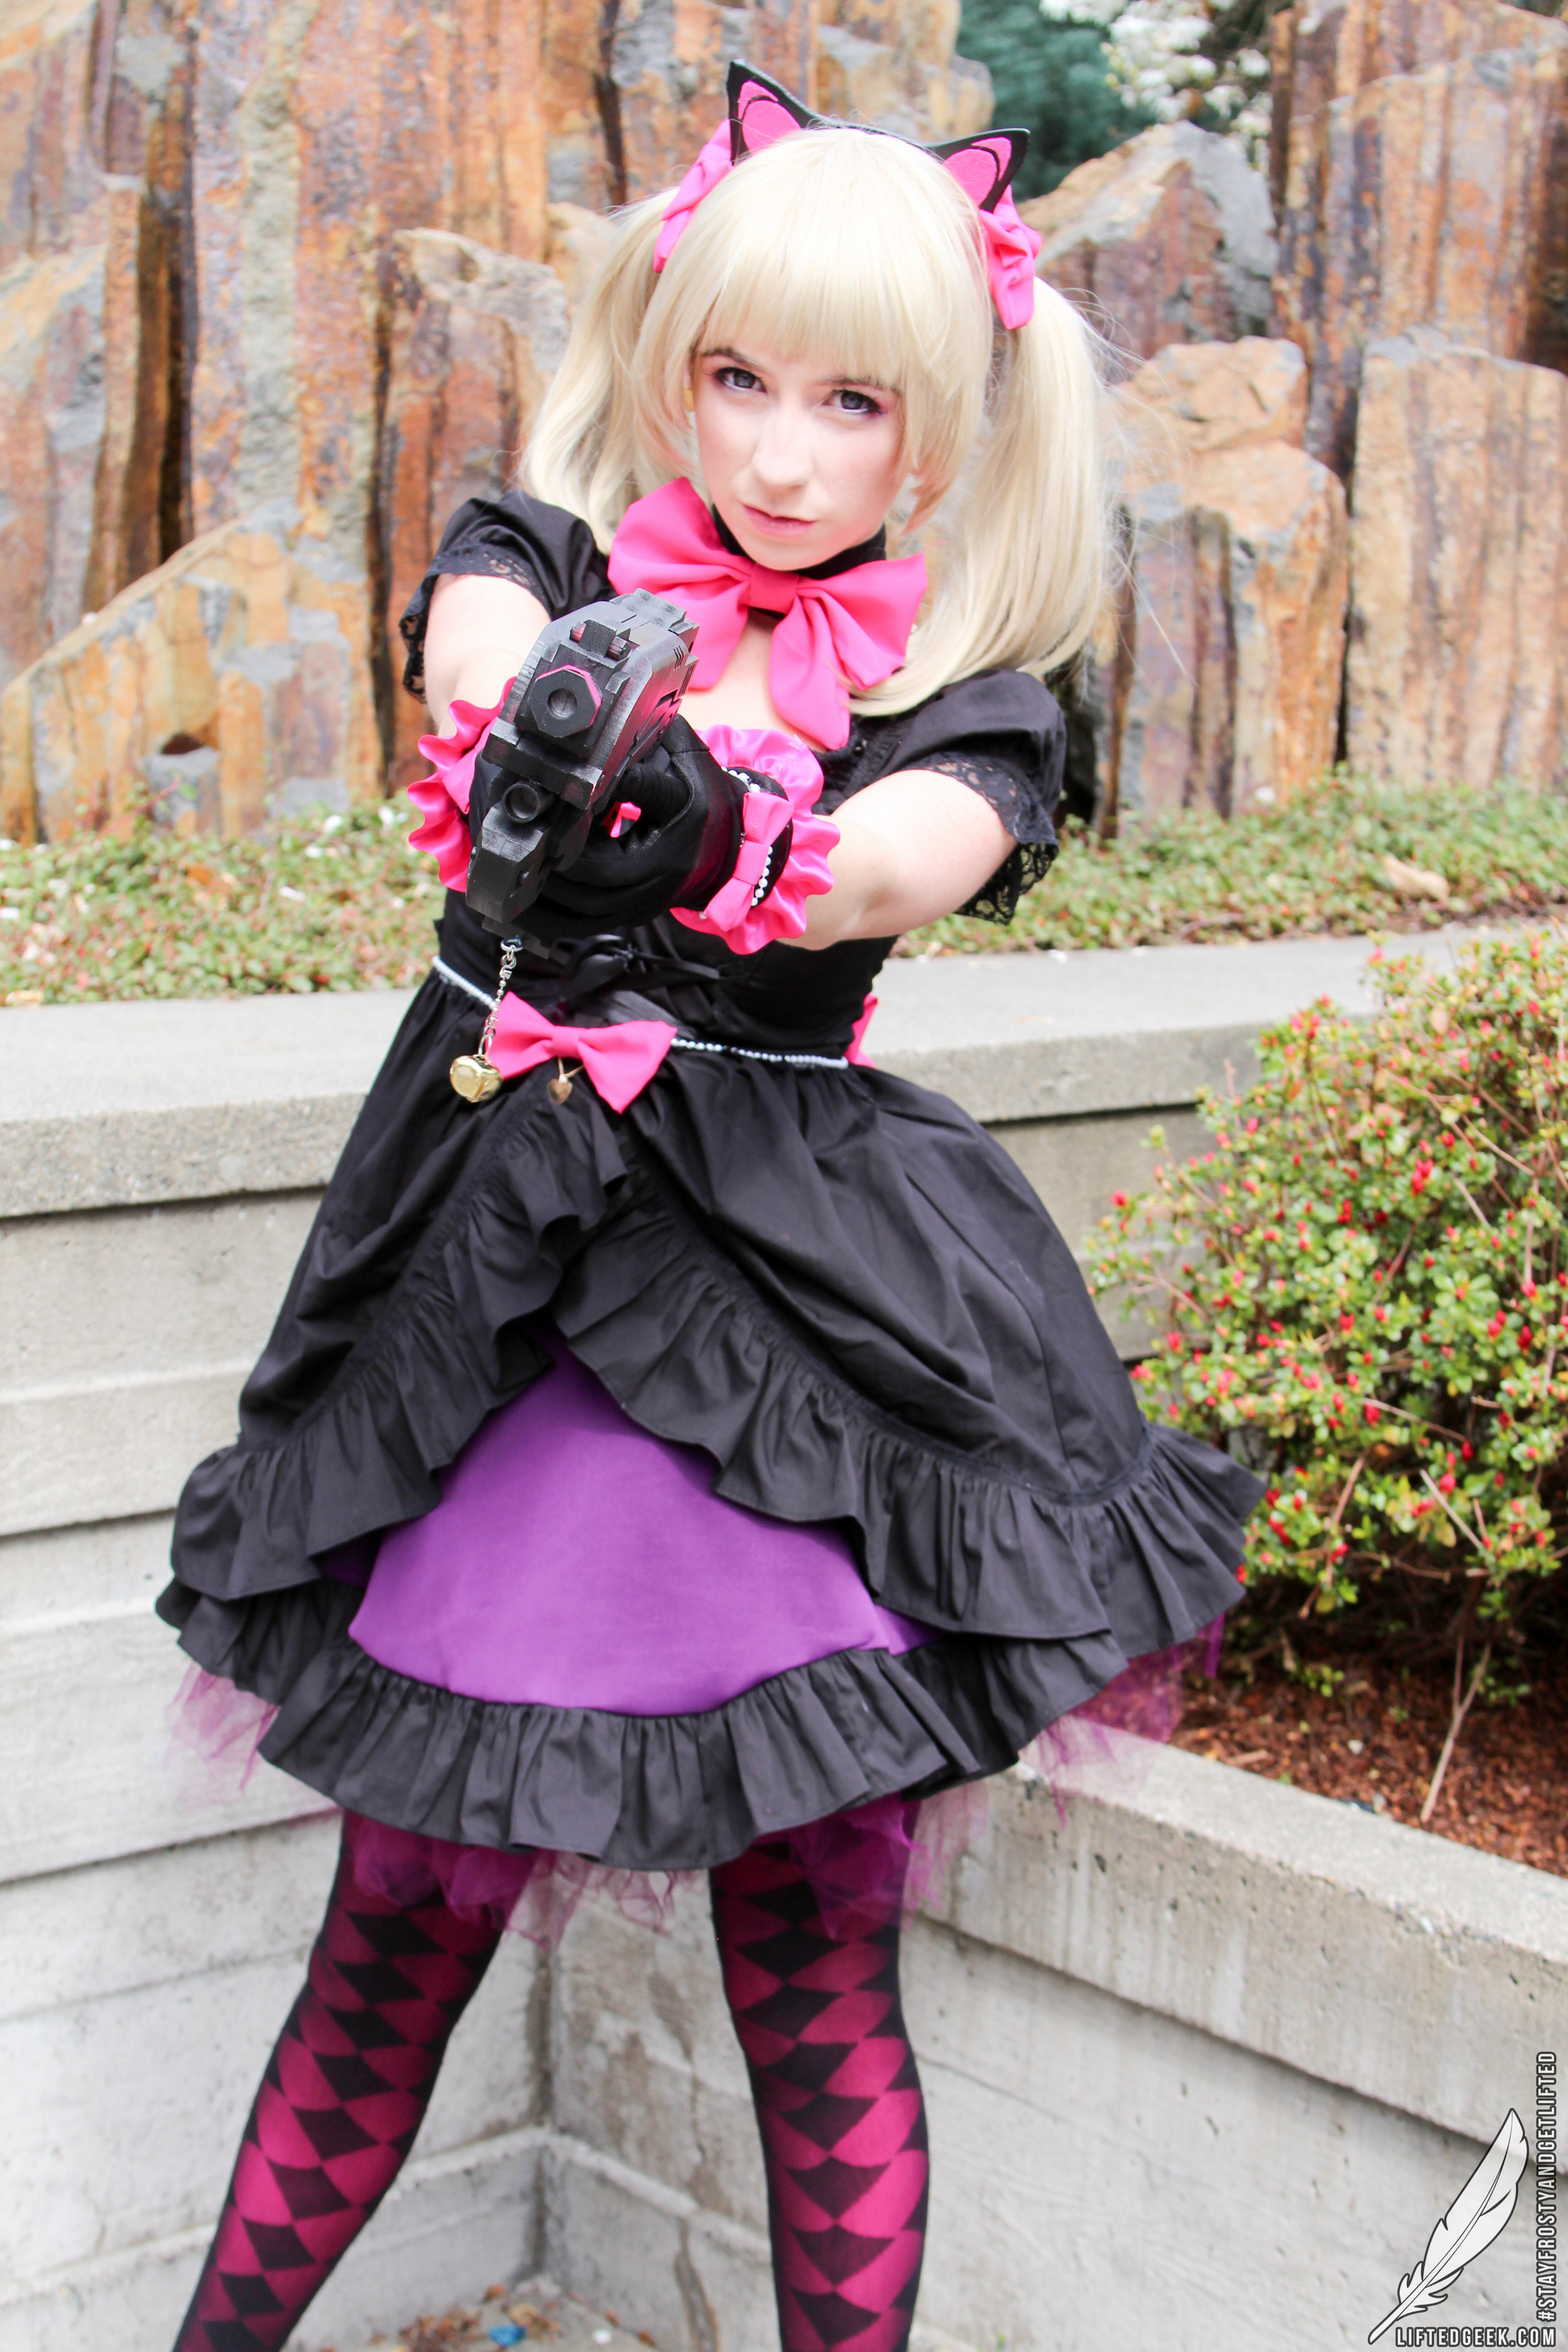 Sakuracon-cosplay-36.jpg